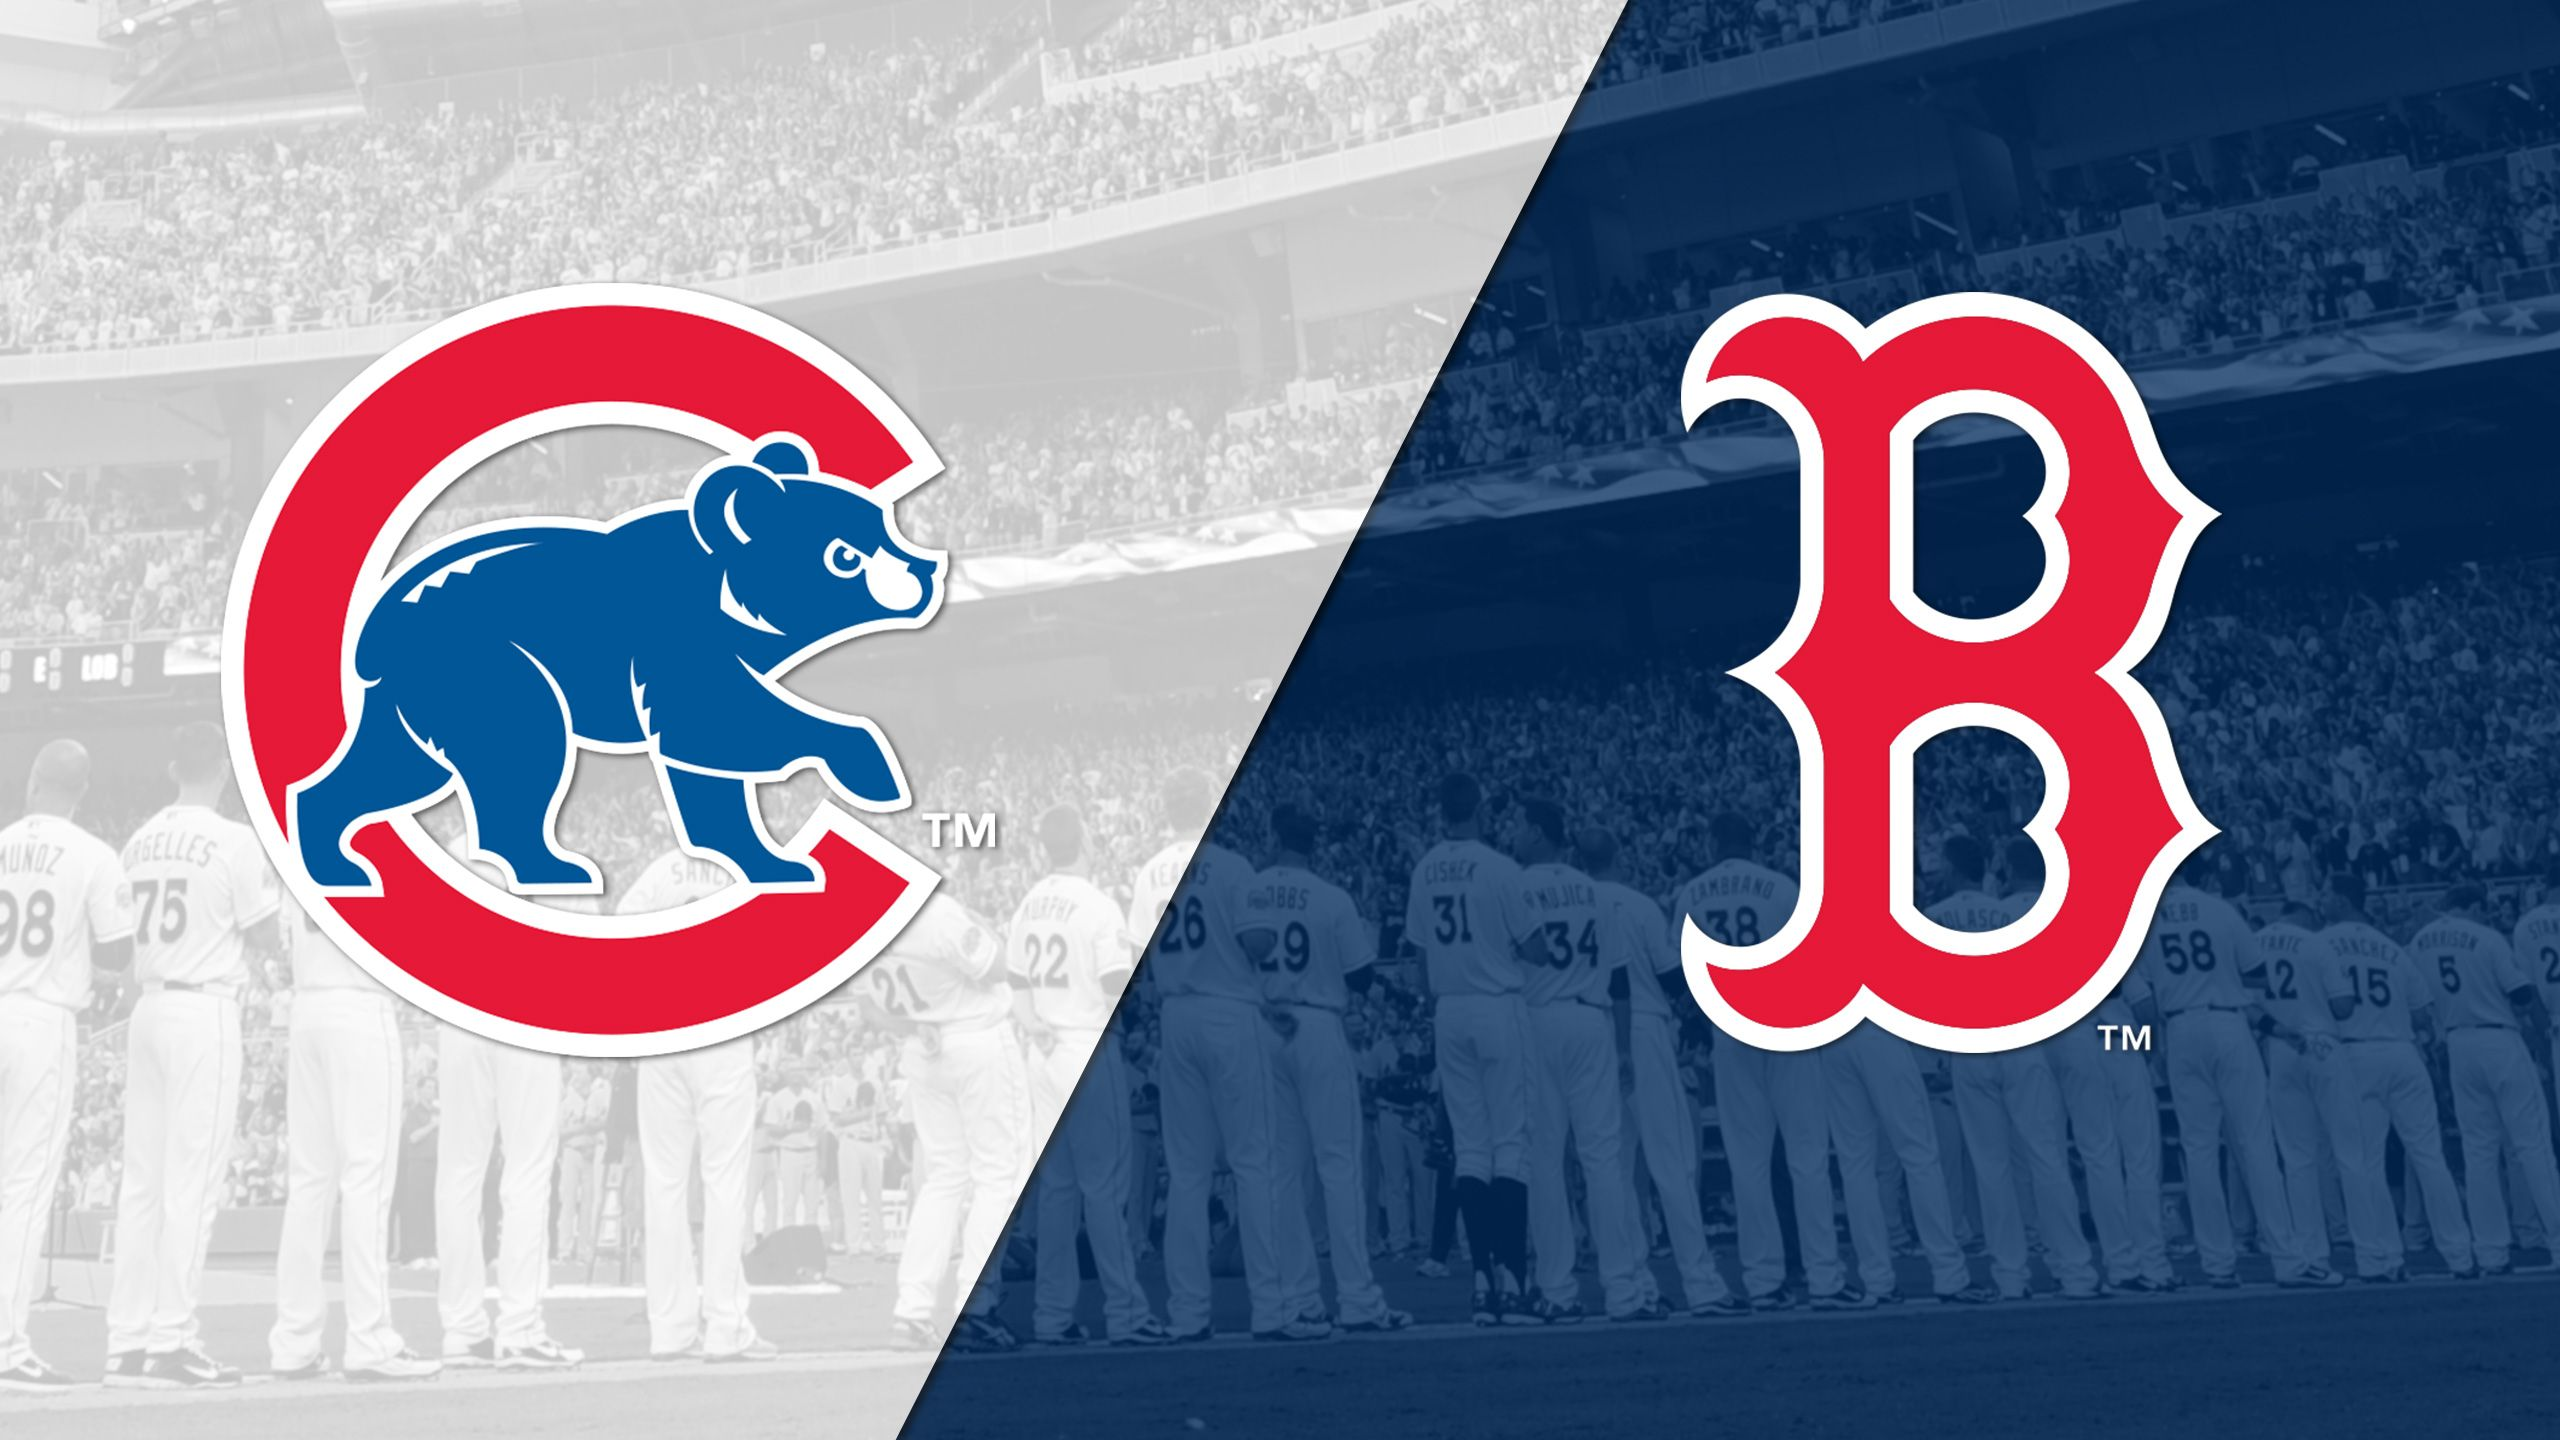 Chicago Cubs vs. Boston Red Sox